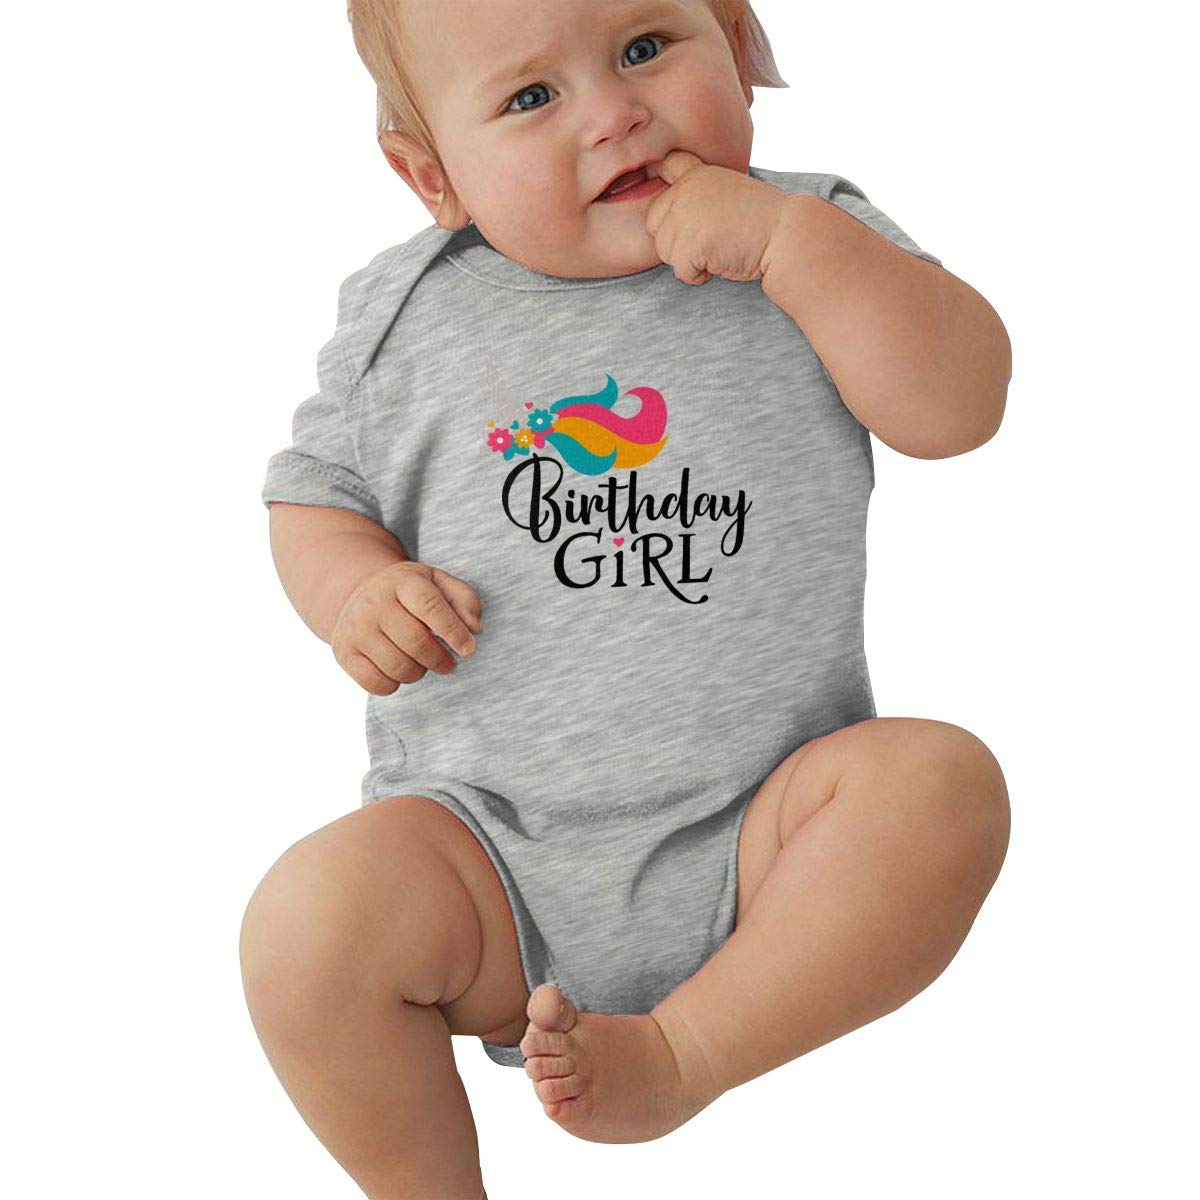 Infant Baby Boys Bodysuit Short-Sleeve Onesie Unicorn Birthday Girl Print Rompers Spring Pajamas